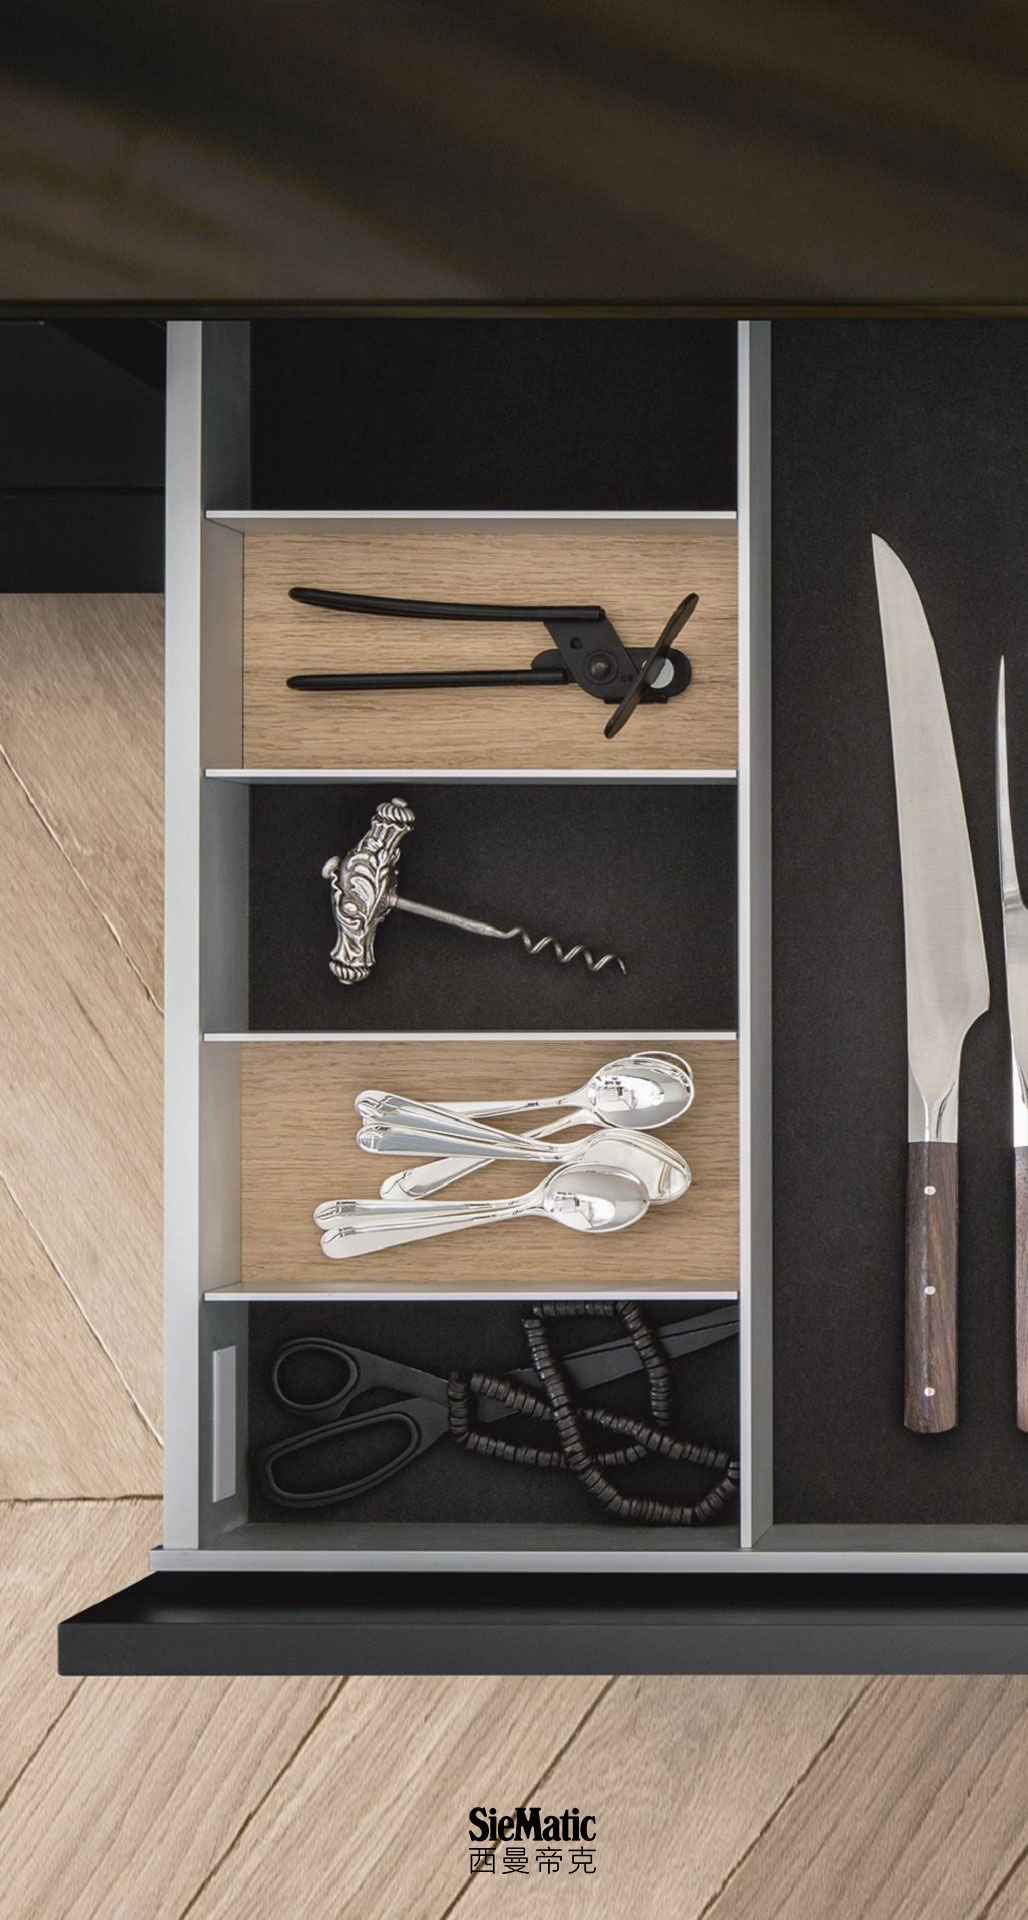 Cutlery and other functional inserts from the SieMatic Aluminum Interior Accessories System